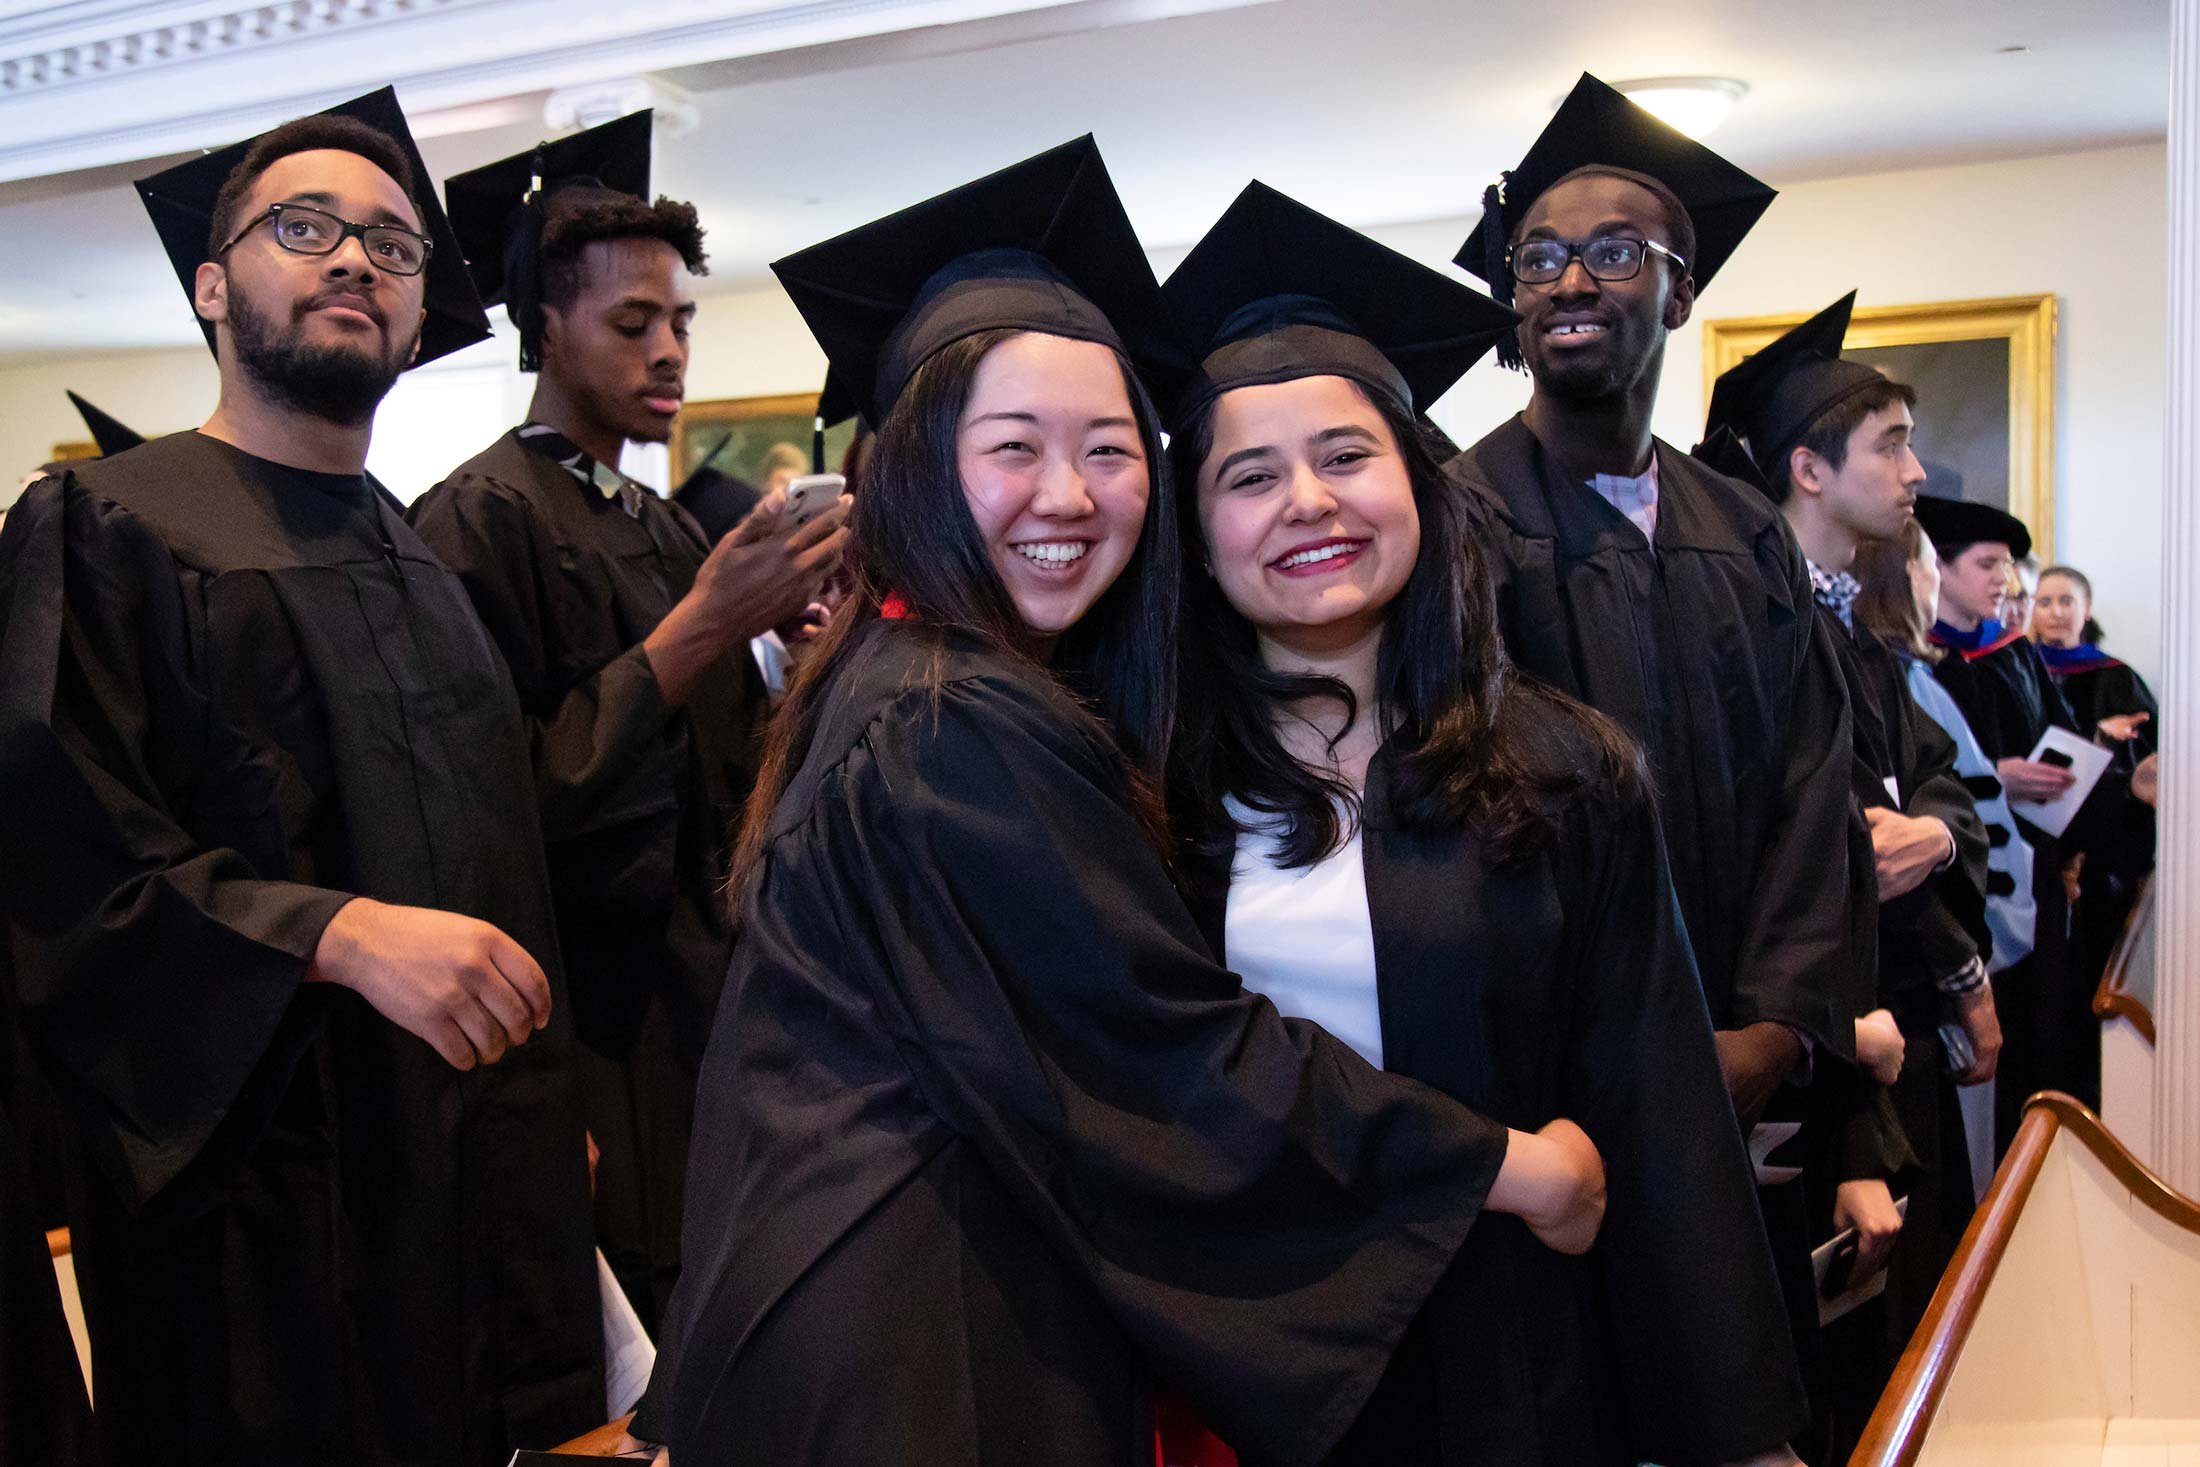 Smiling students wearing graduation gowns